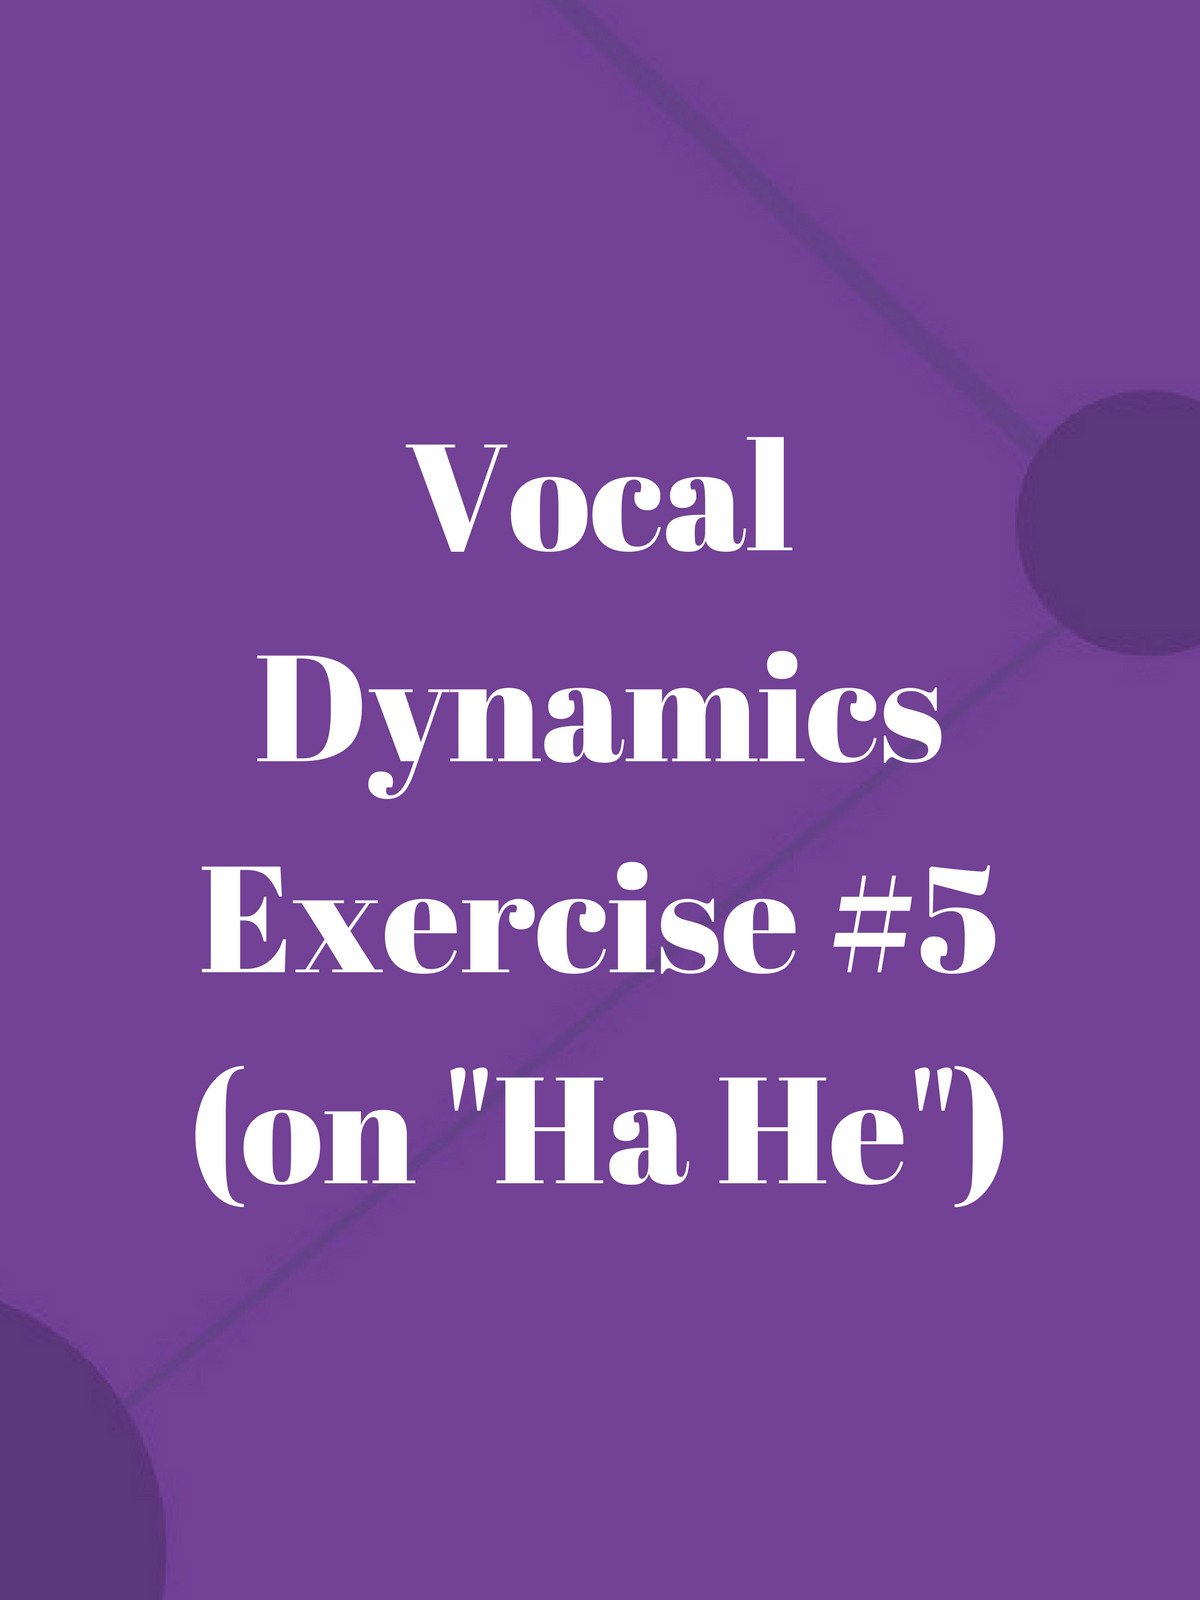 "Vocal Dynamics Exercise #5 (on ""Ha He"")"